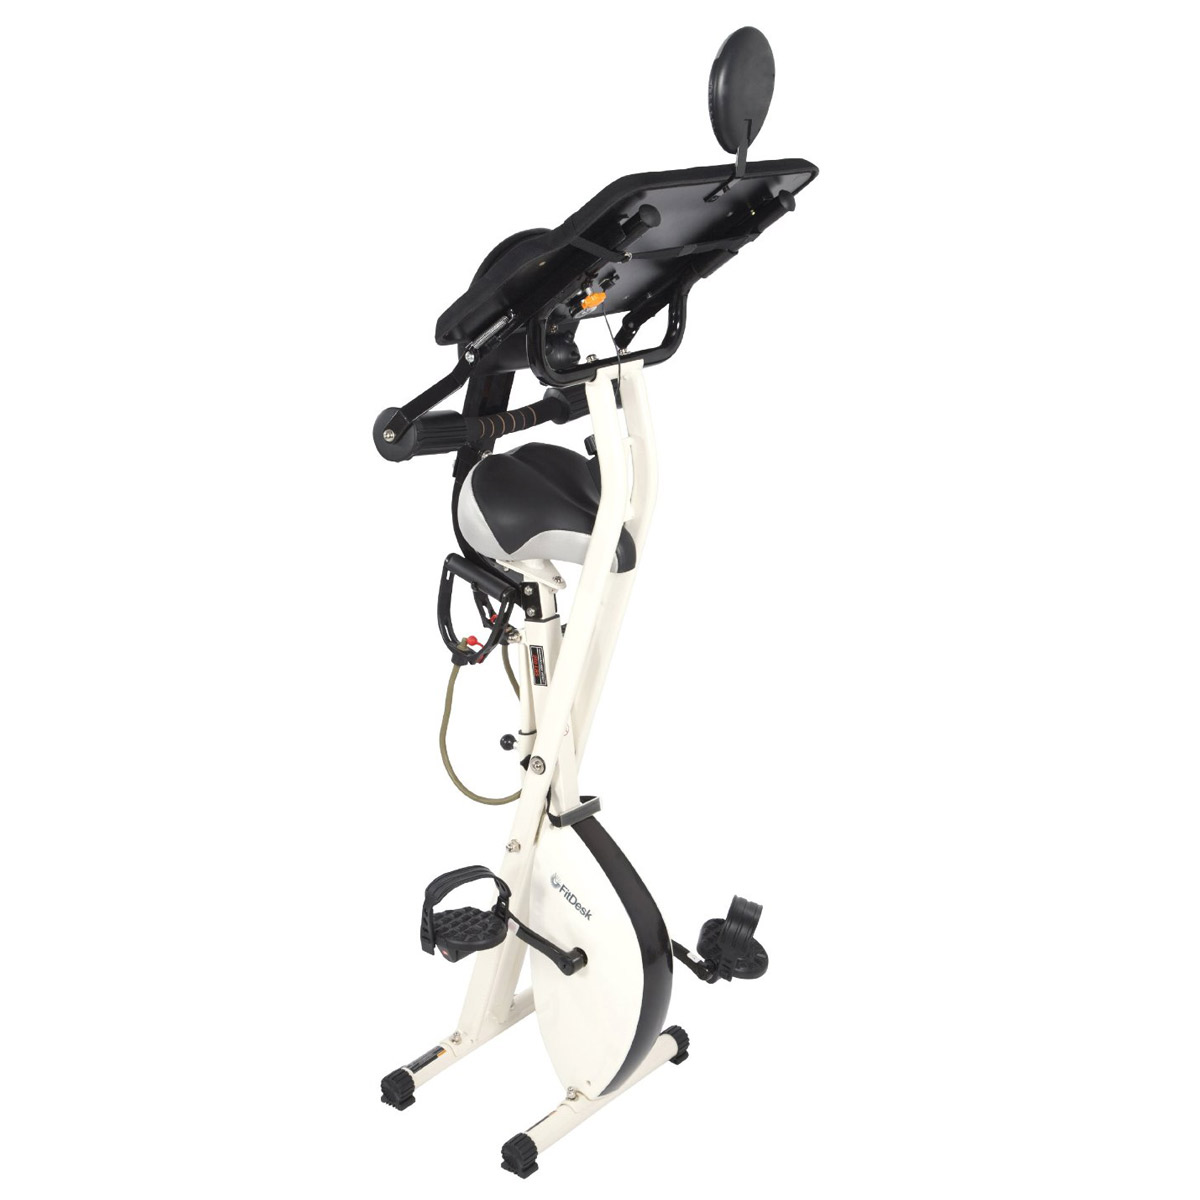 fitdesk-x1-folding-exercise-bike-with-sl